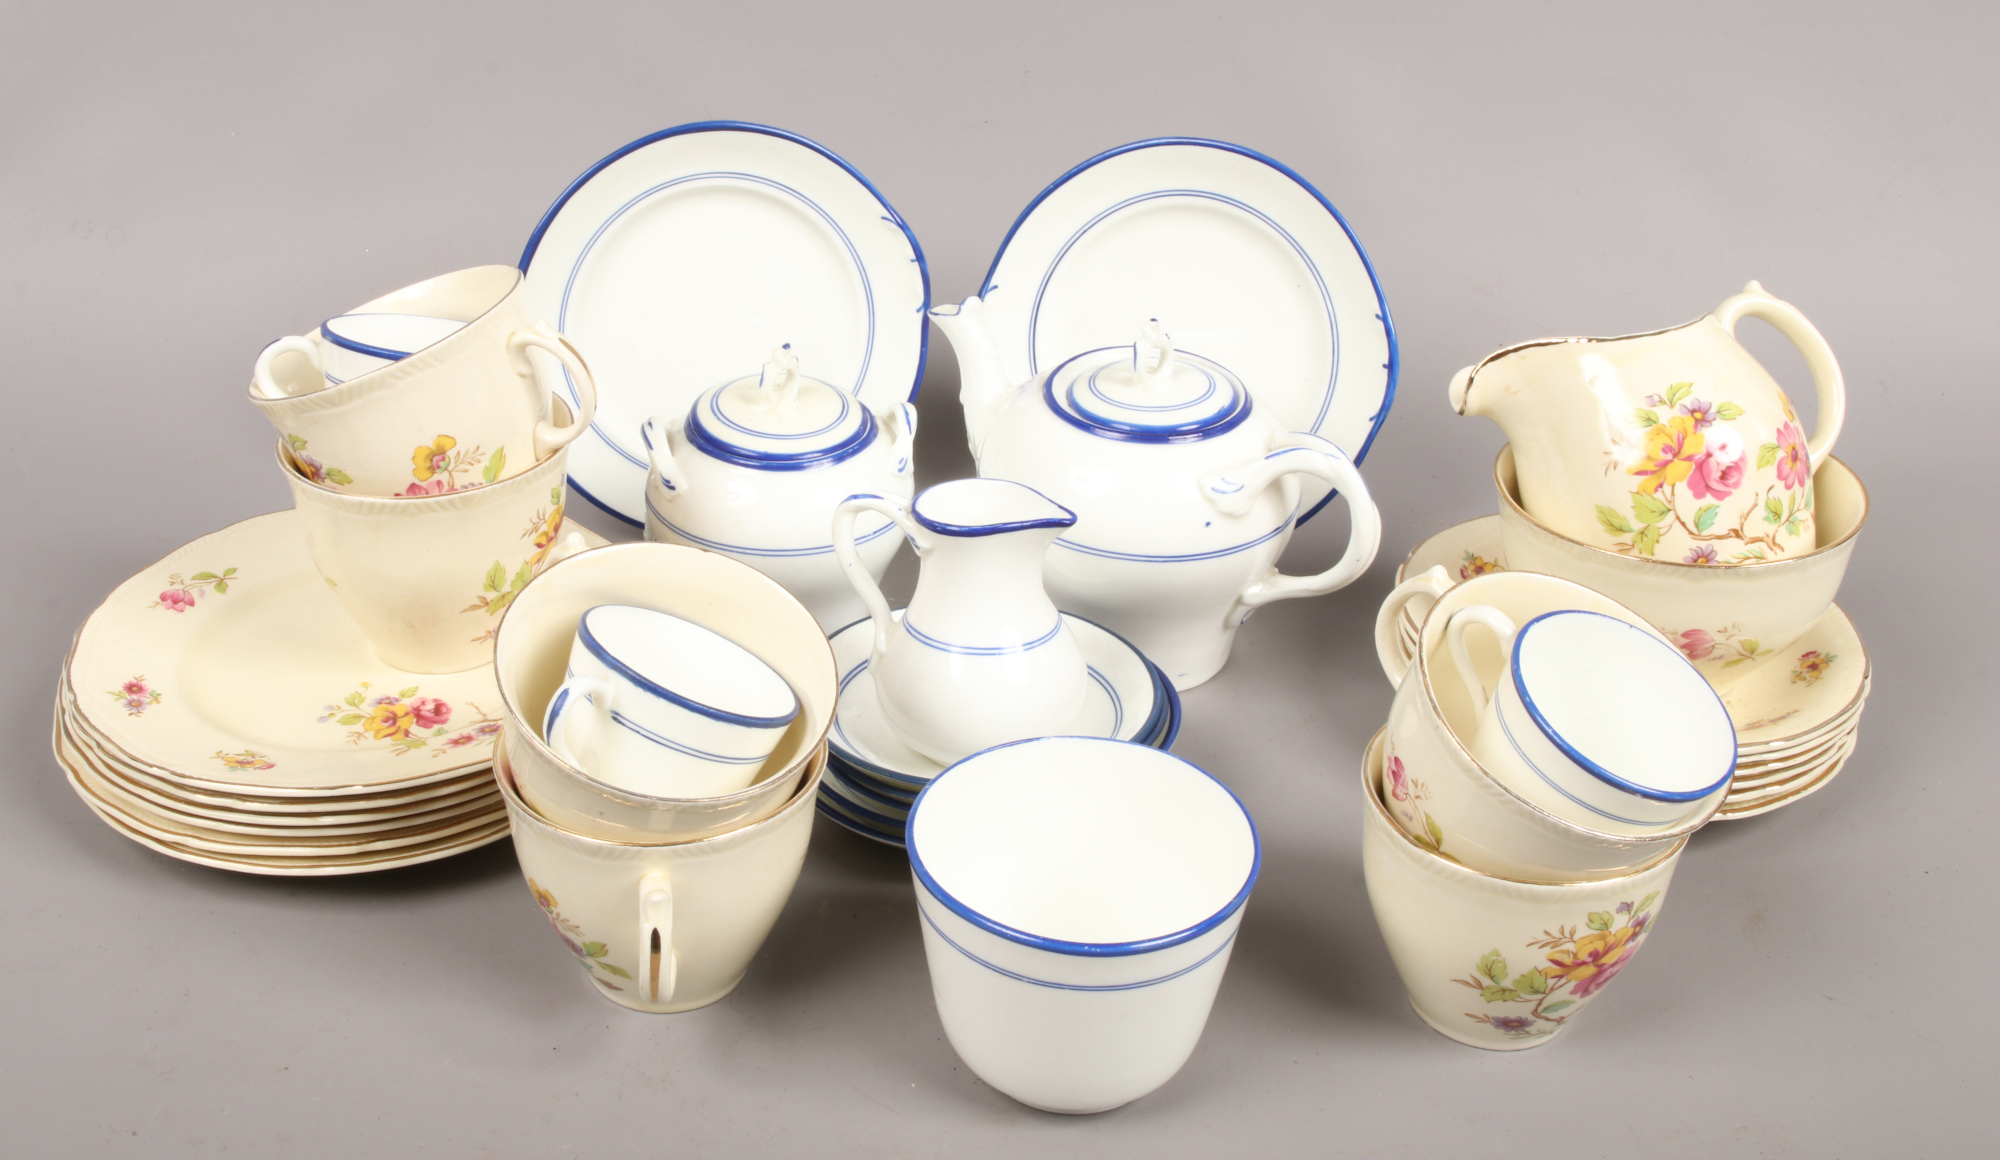 Lot 49 - A six place floral transfer printed tea service stamped England 85 along with a blue and white